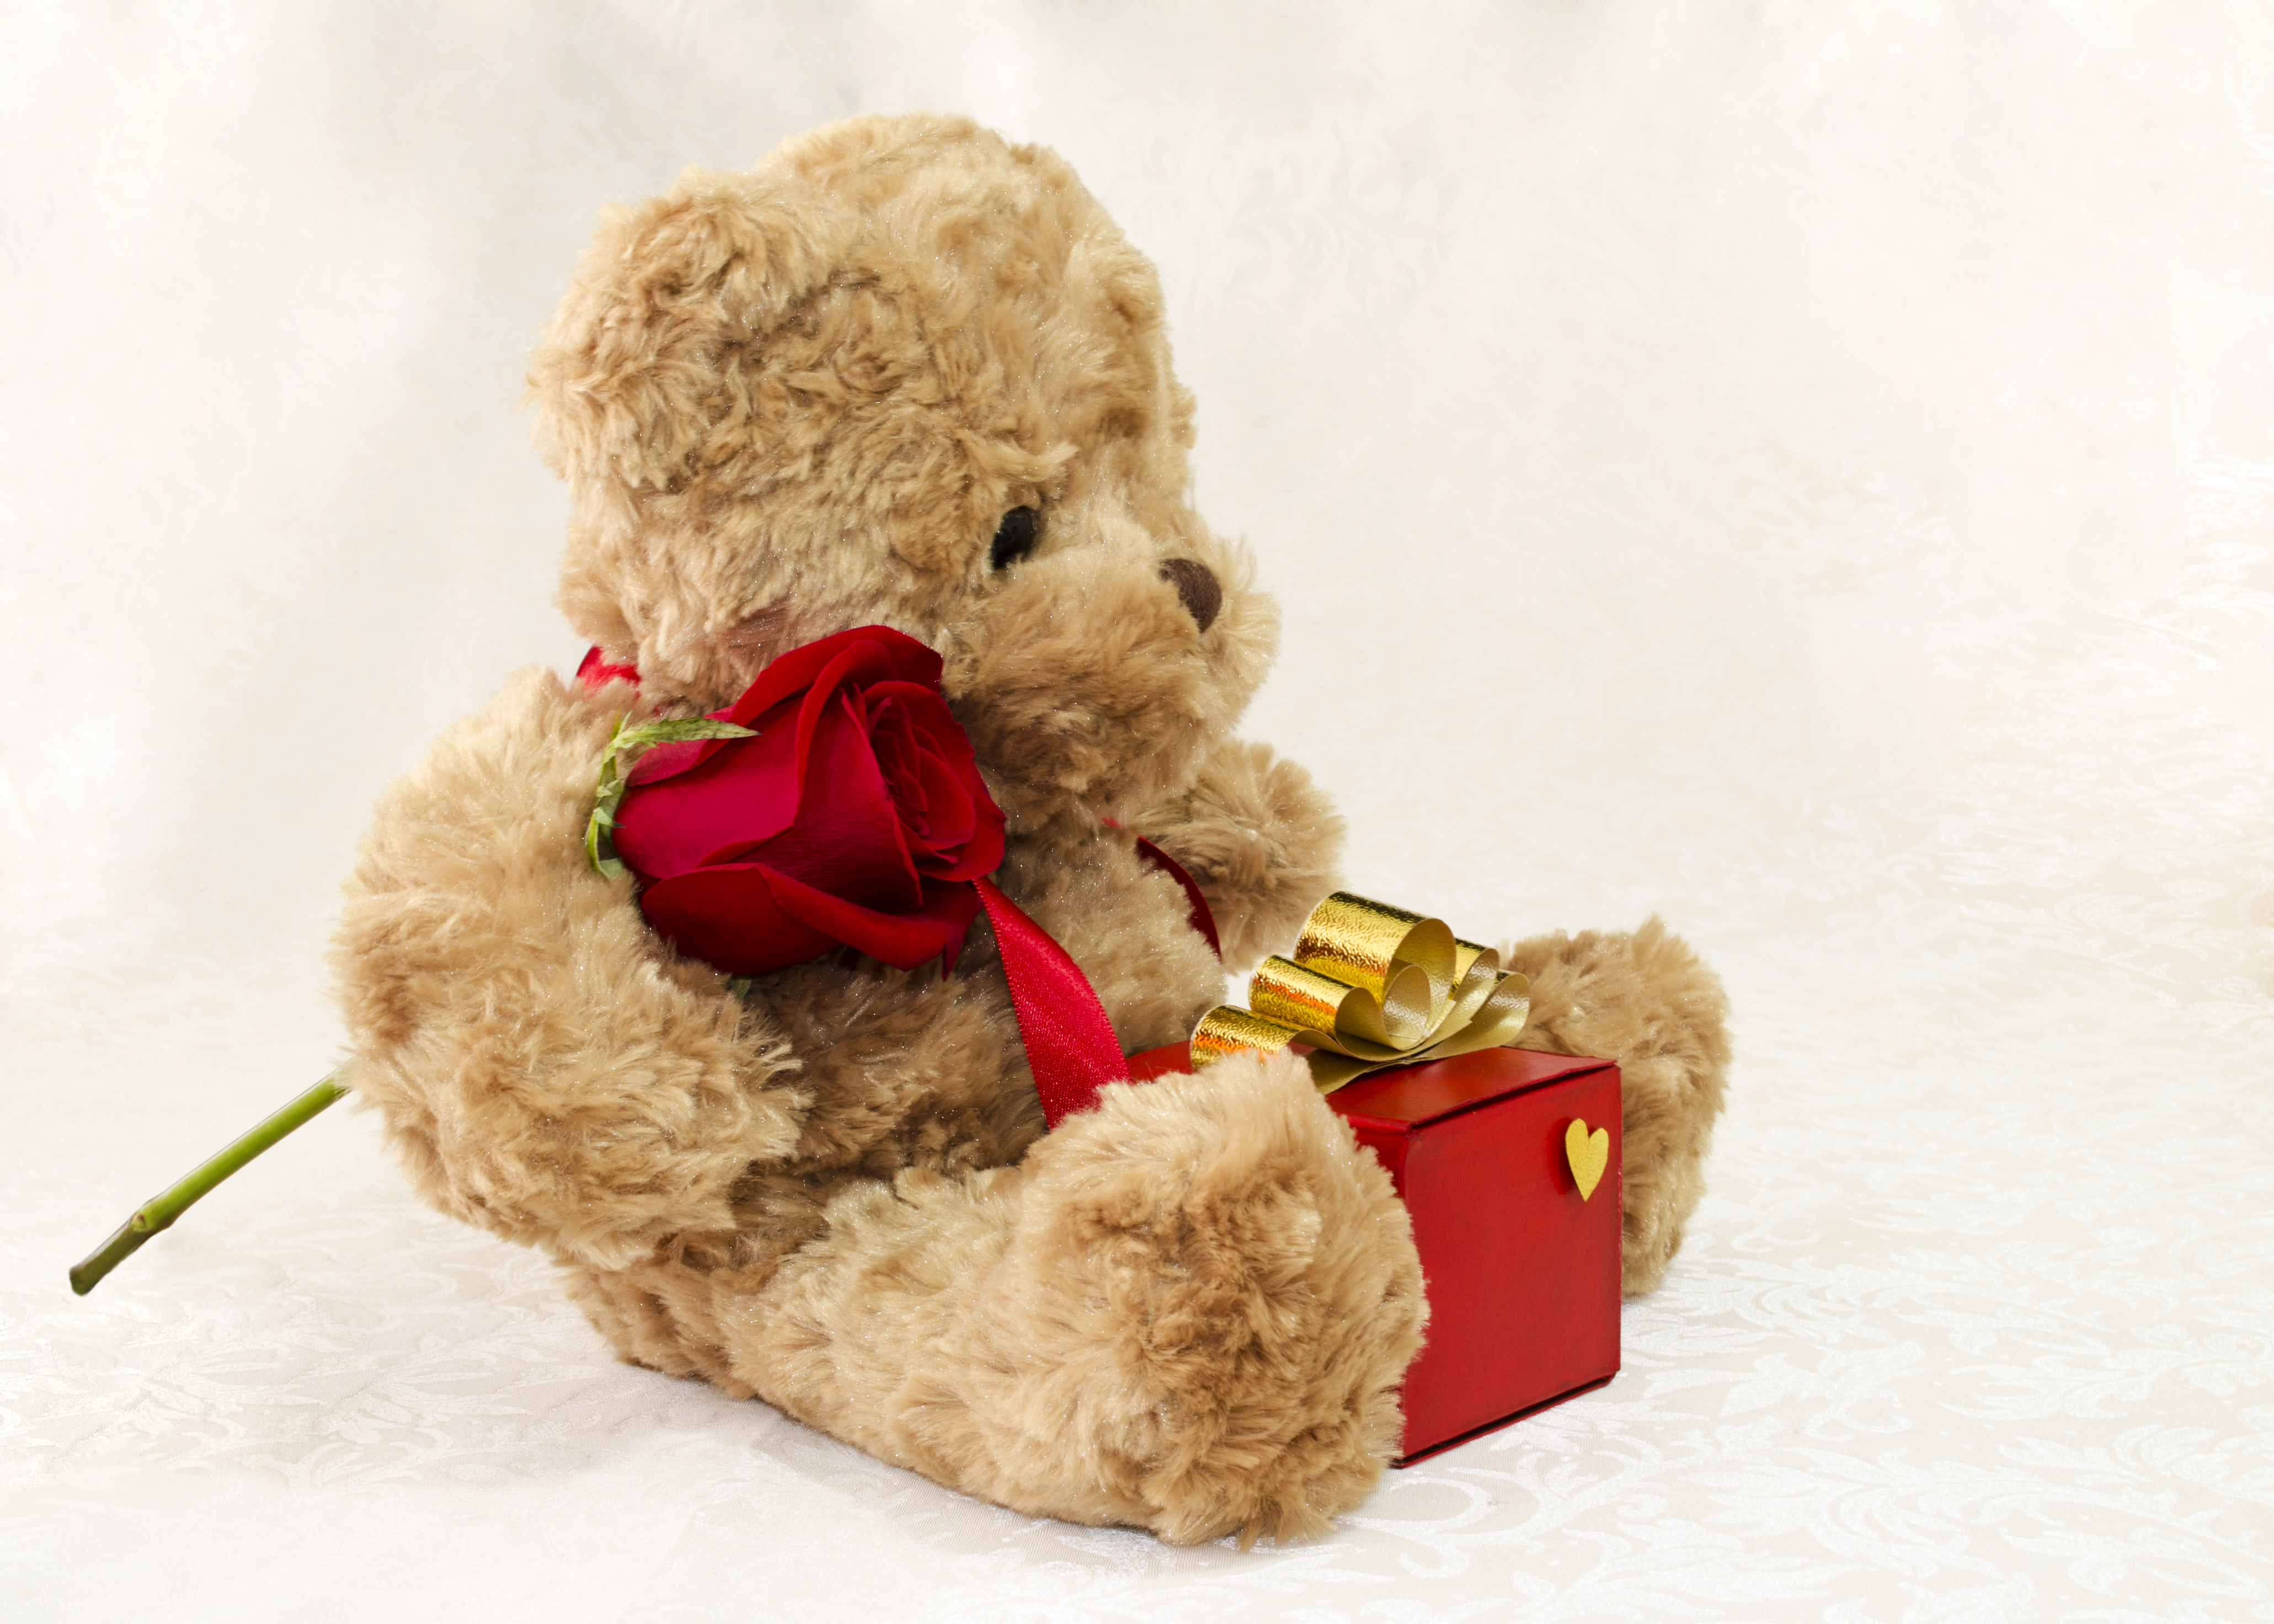 Brown teddy bear with a rose and a gift photo